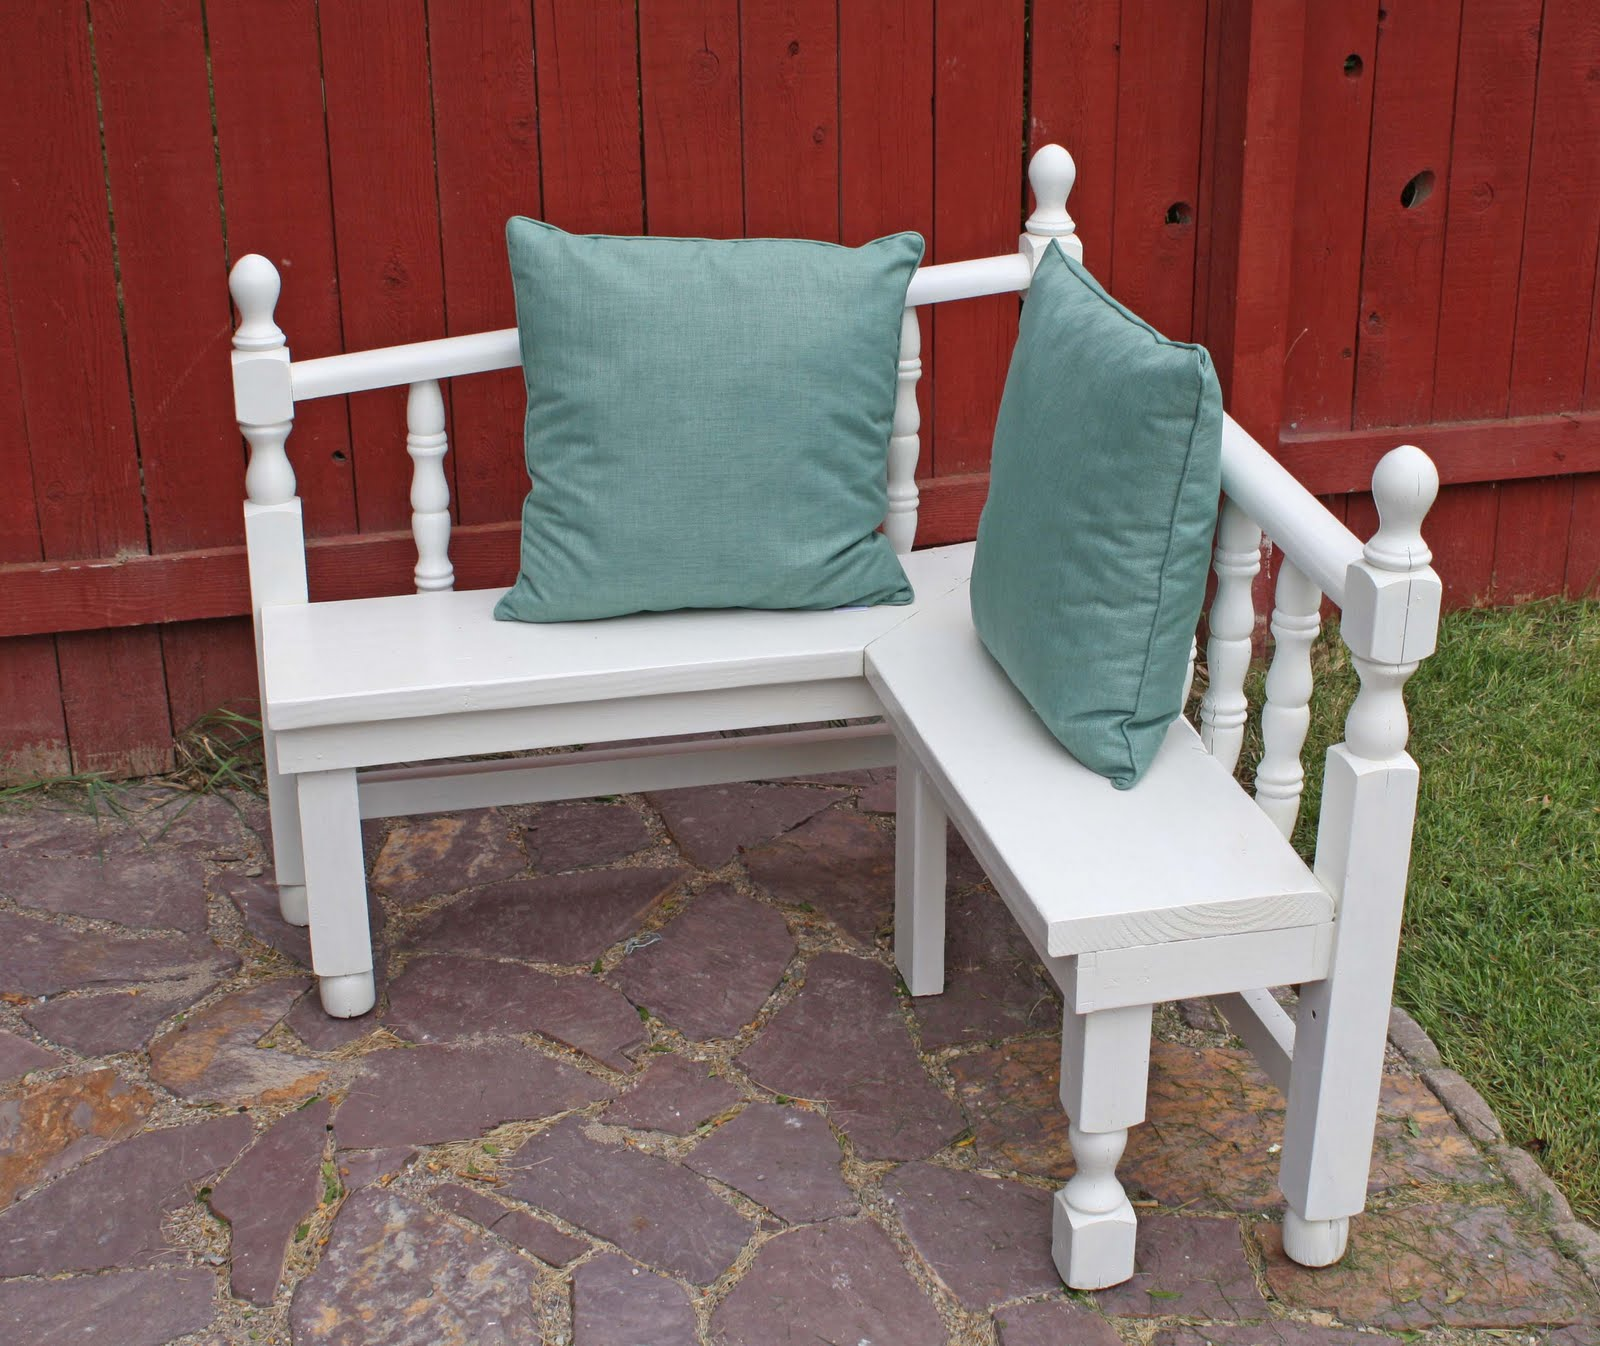 benches backless park corner bench porch patio for furniture metal cedar iron front sale large small cushions top exterior colorful wood garden round price wooden outdoor great